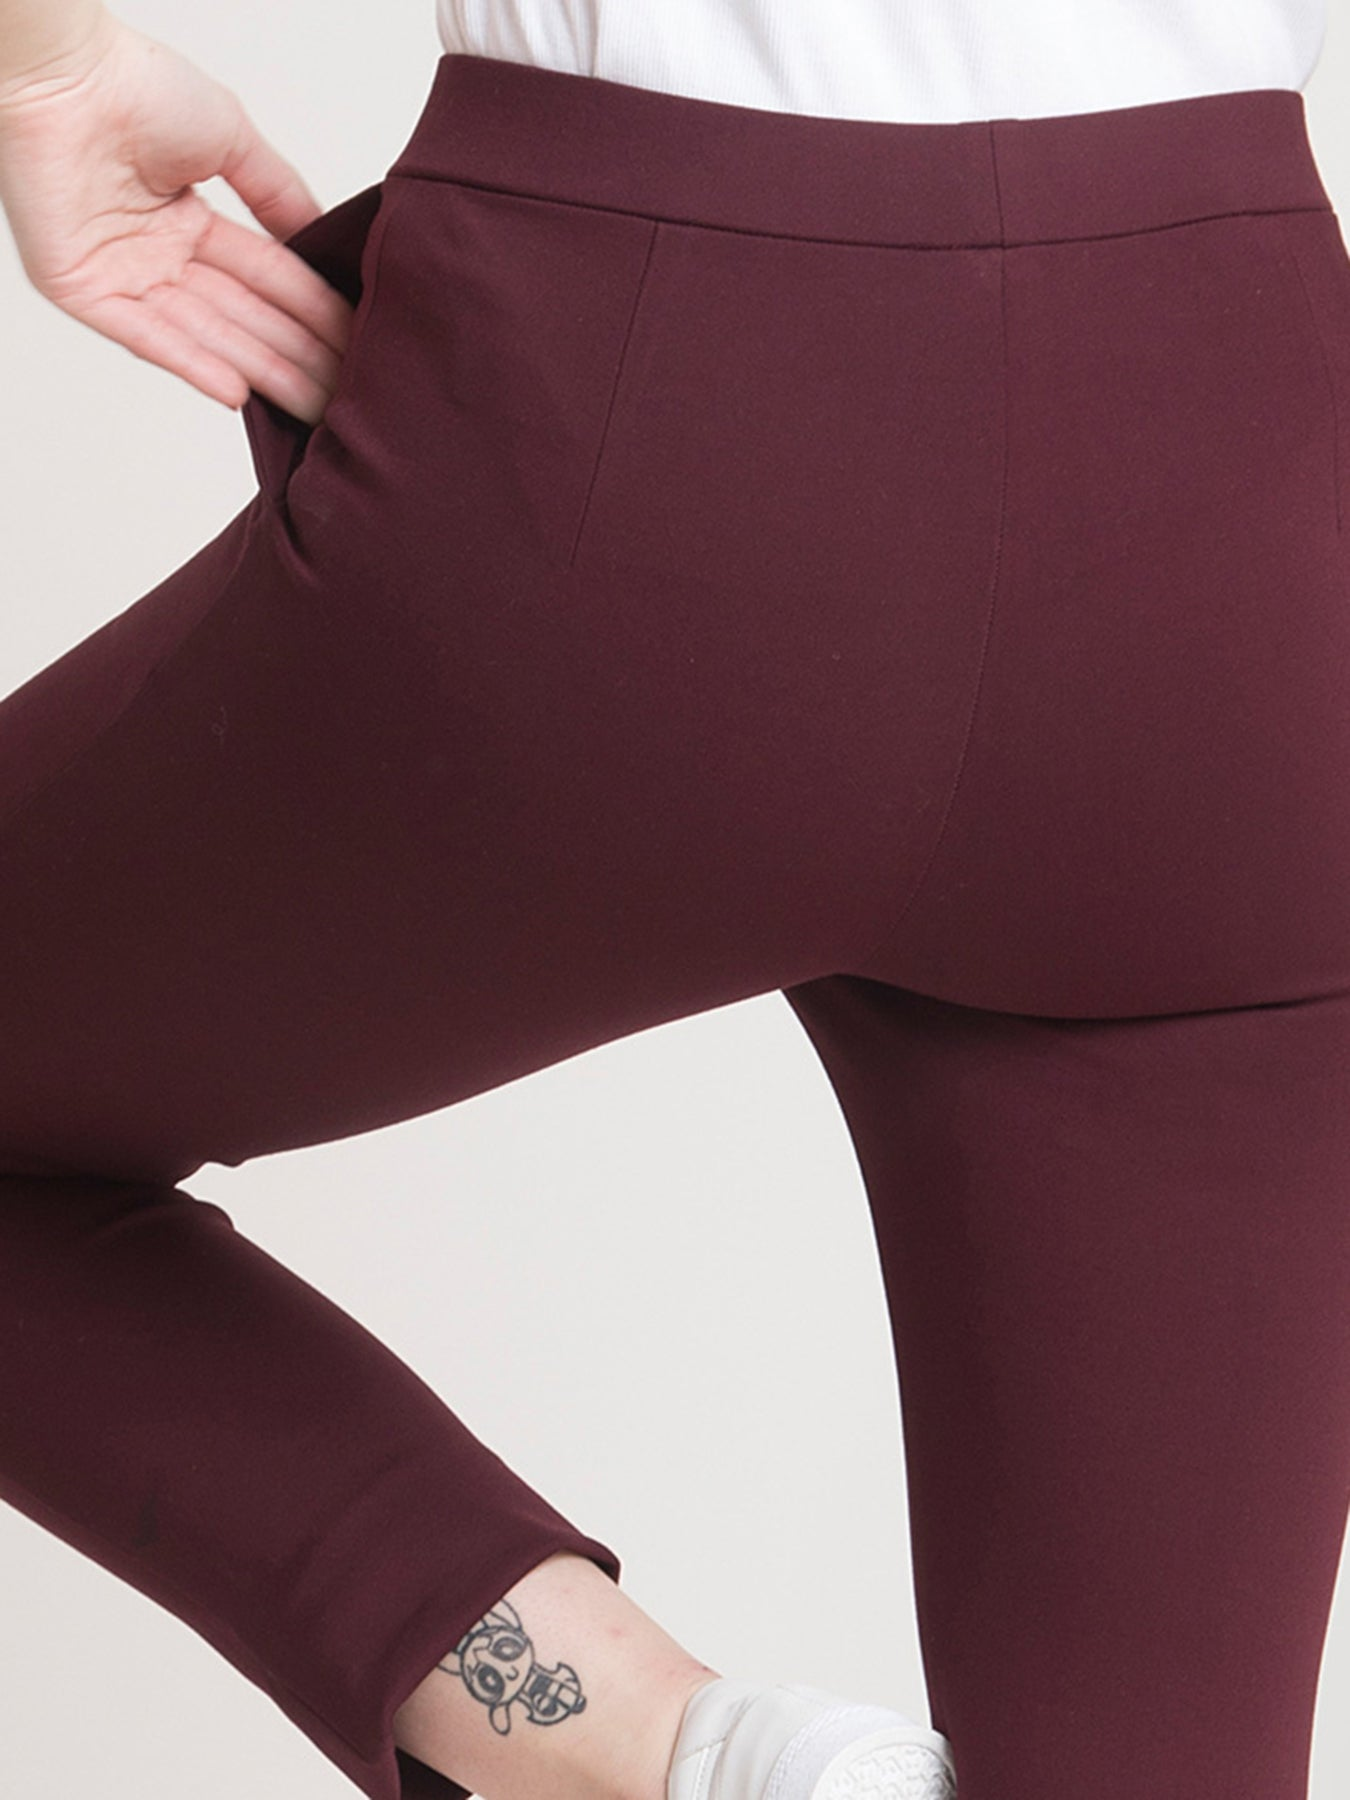 4 Way Stretch Cropped LivIn Pants - Maroon